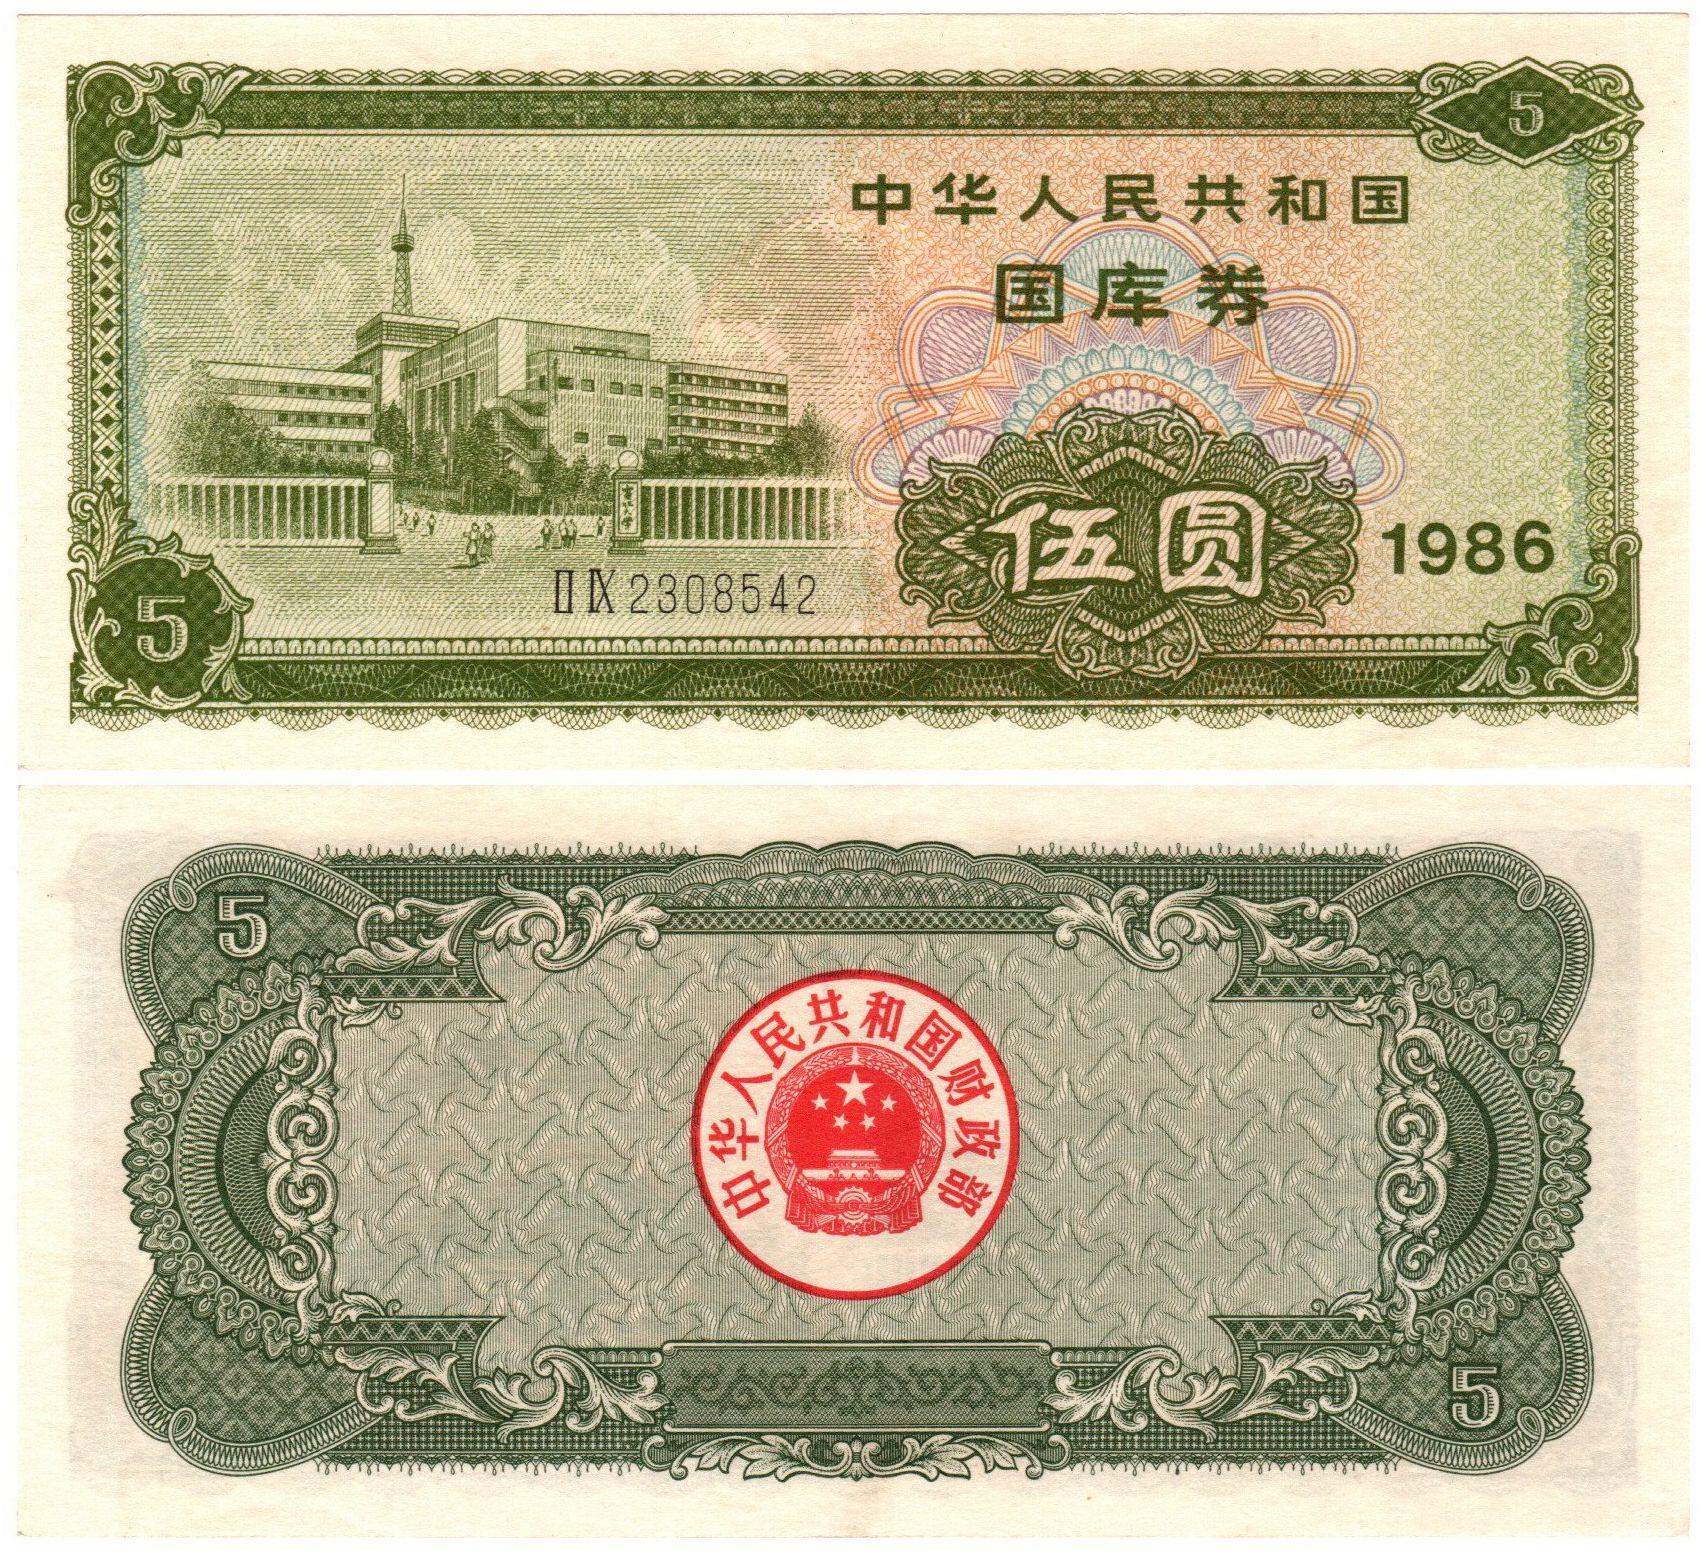 B7041, Treasury Bond of P.R.China, Five Yuan (5 Dollars Loan) 1986